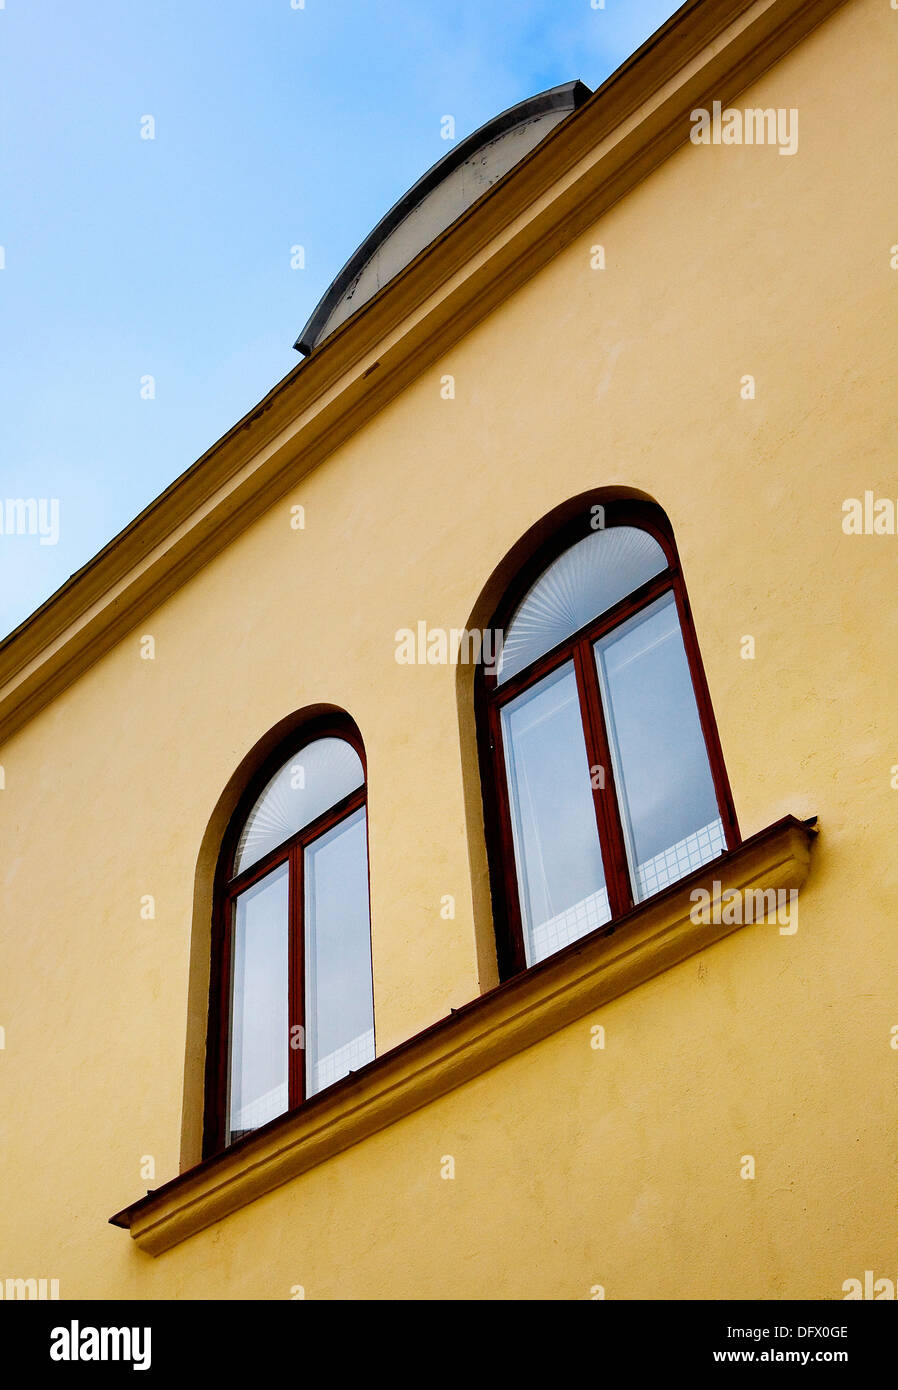 Yellow Arched Wall Stock Photos & Yellow Arched Wall Stock Images ...